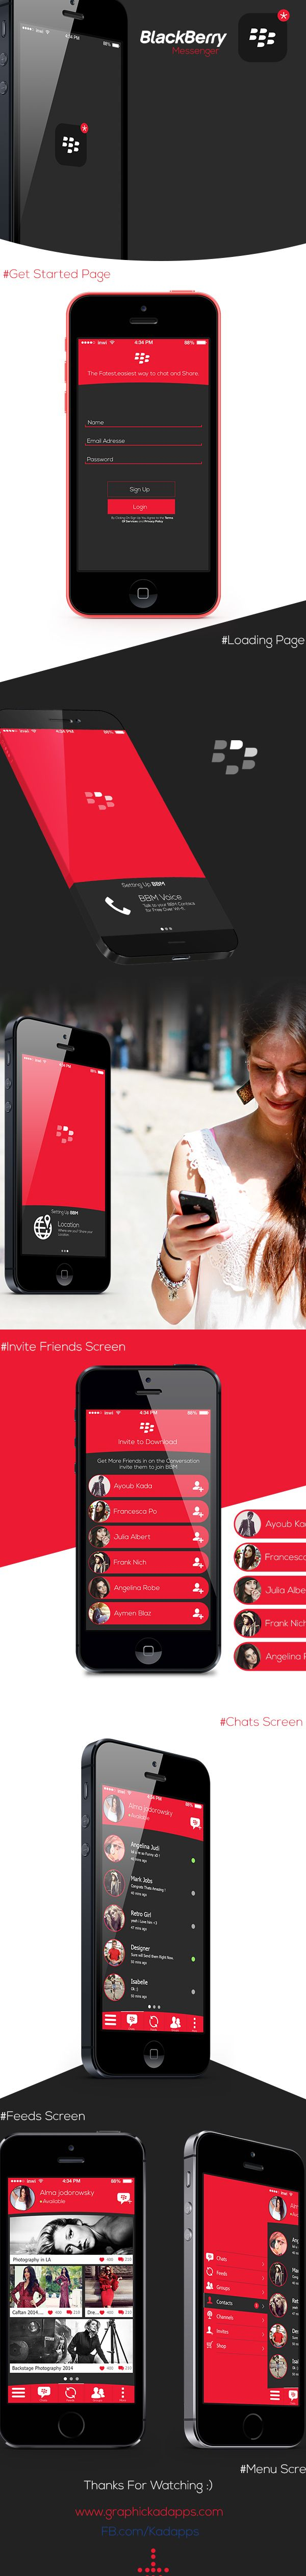 Blackberry Messenger IOS8  by Graphic Kadapps, via Behance